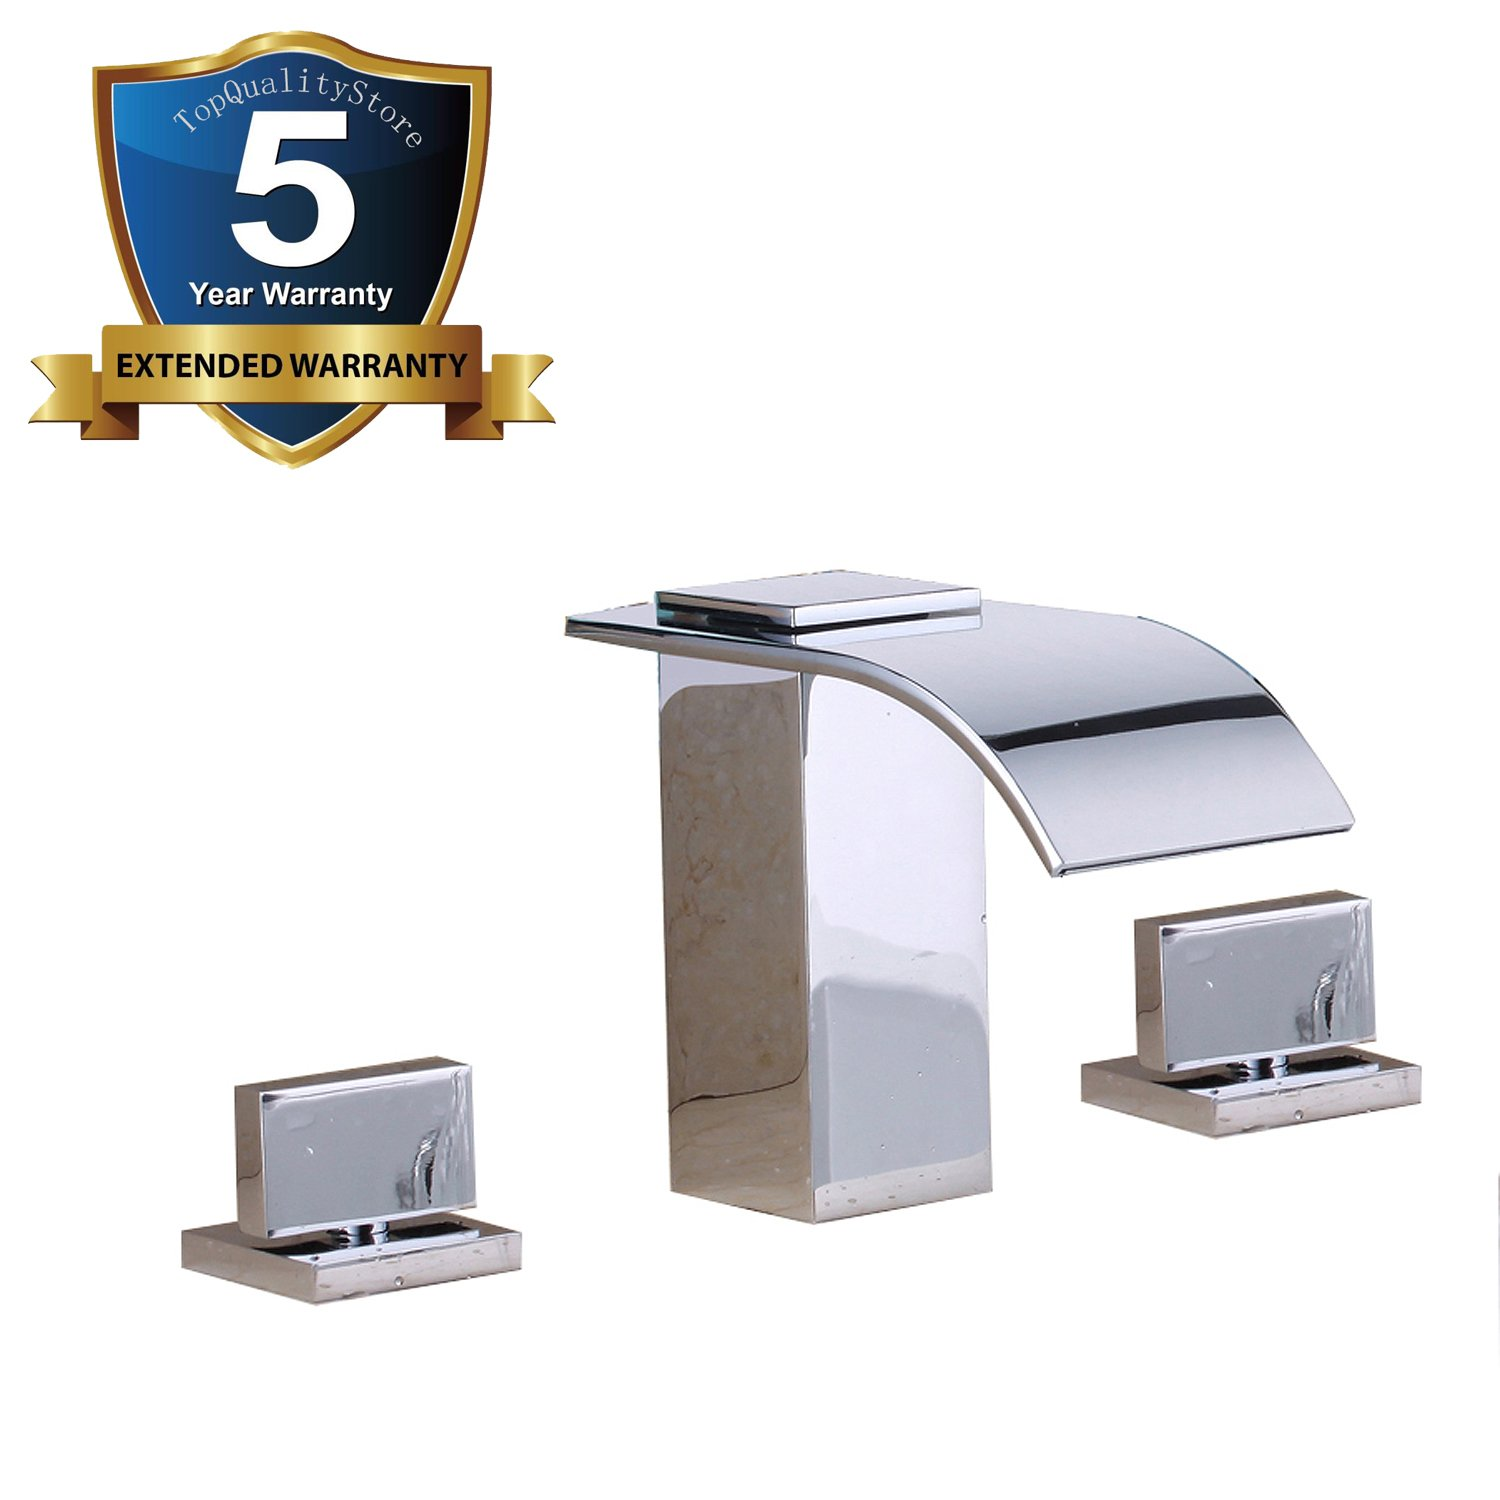 Bathroom Sink Faucet Two Handles Three Holes Polished Chrome Waterfall Widespread Tap by Topqualitystore